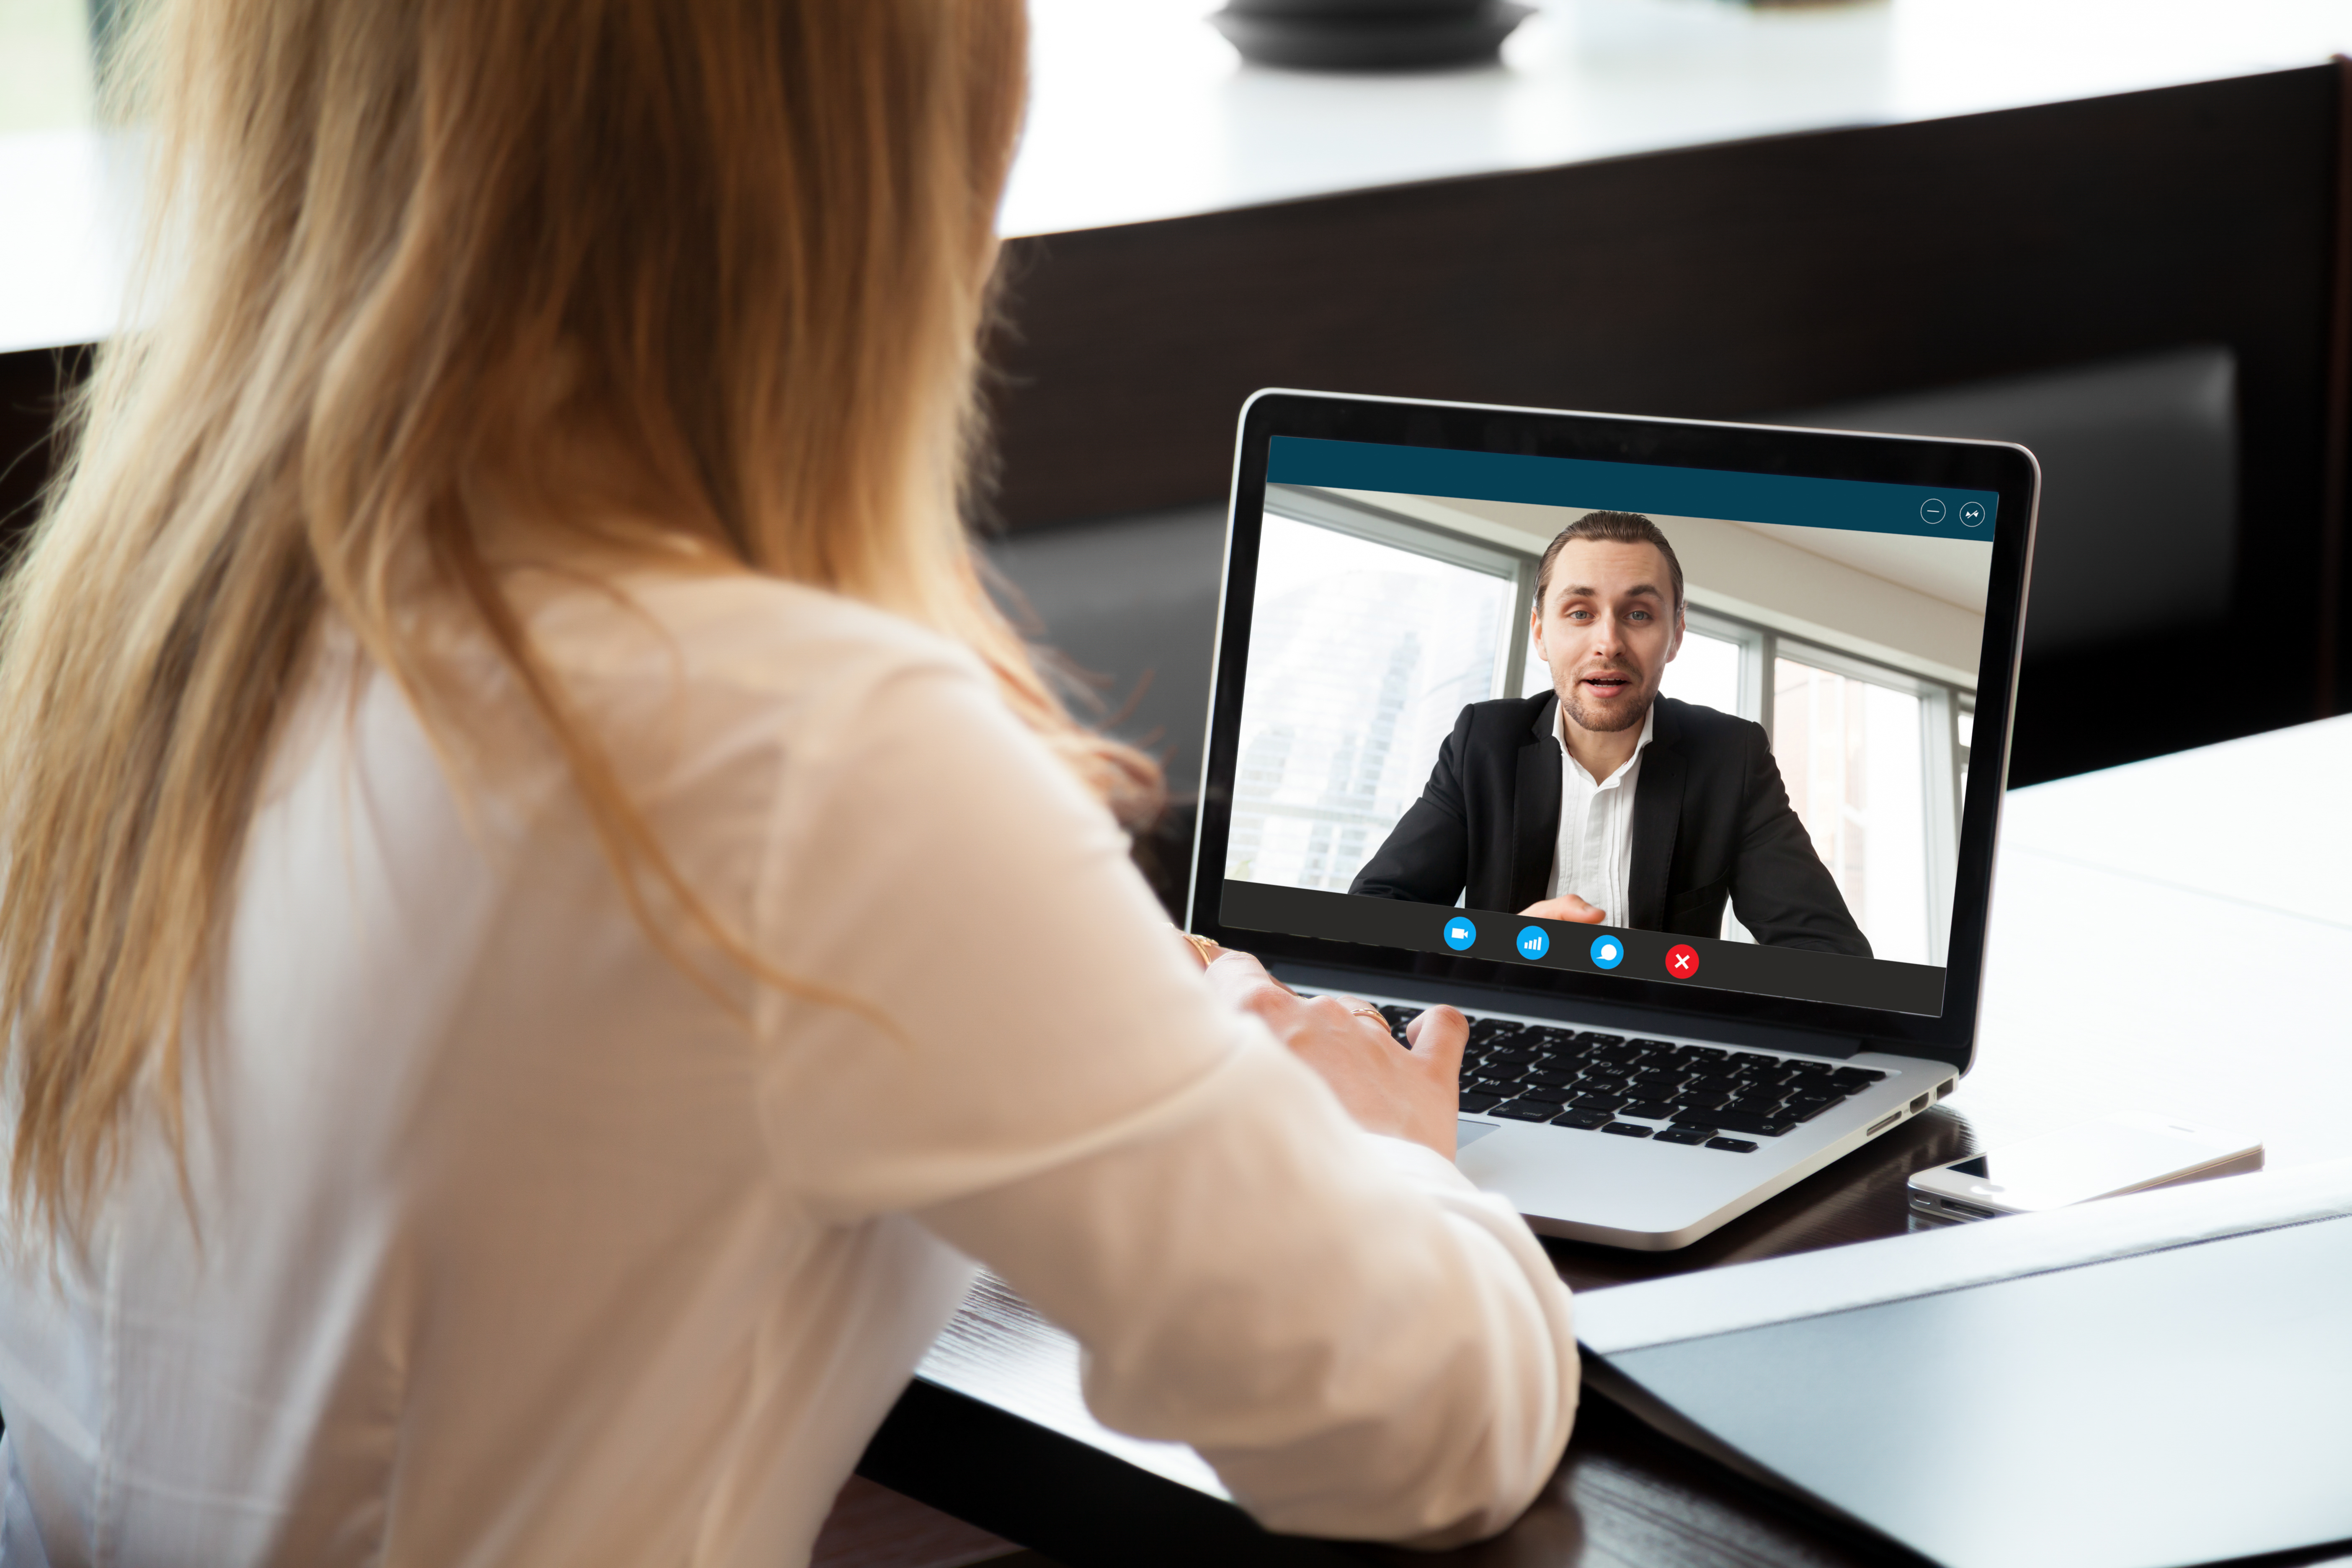 Video chat professional computer